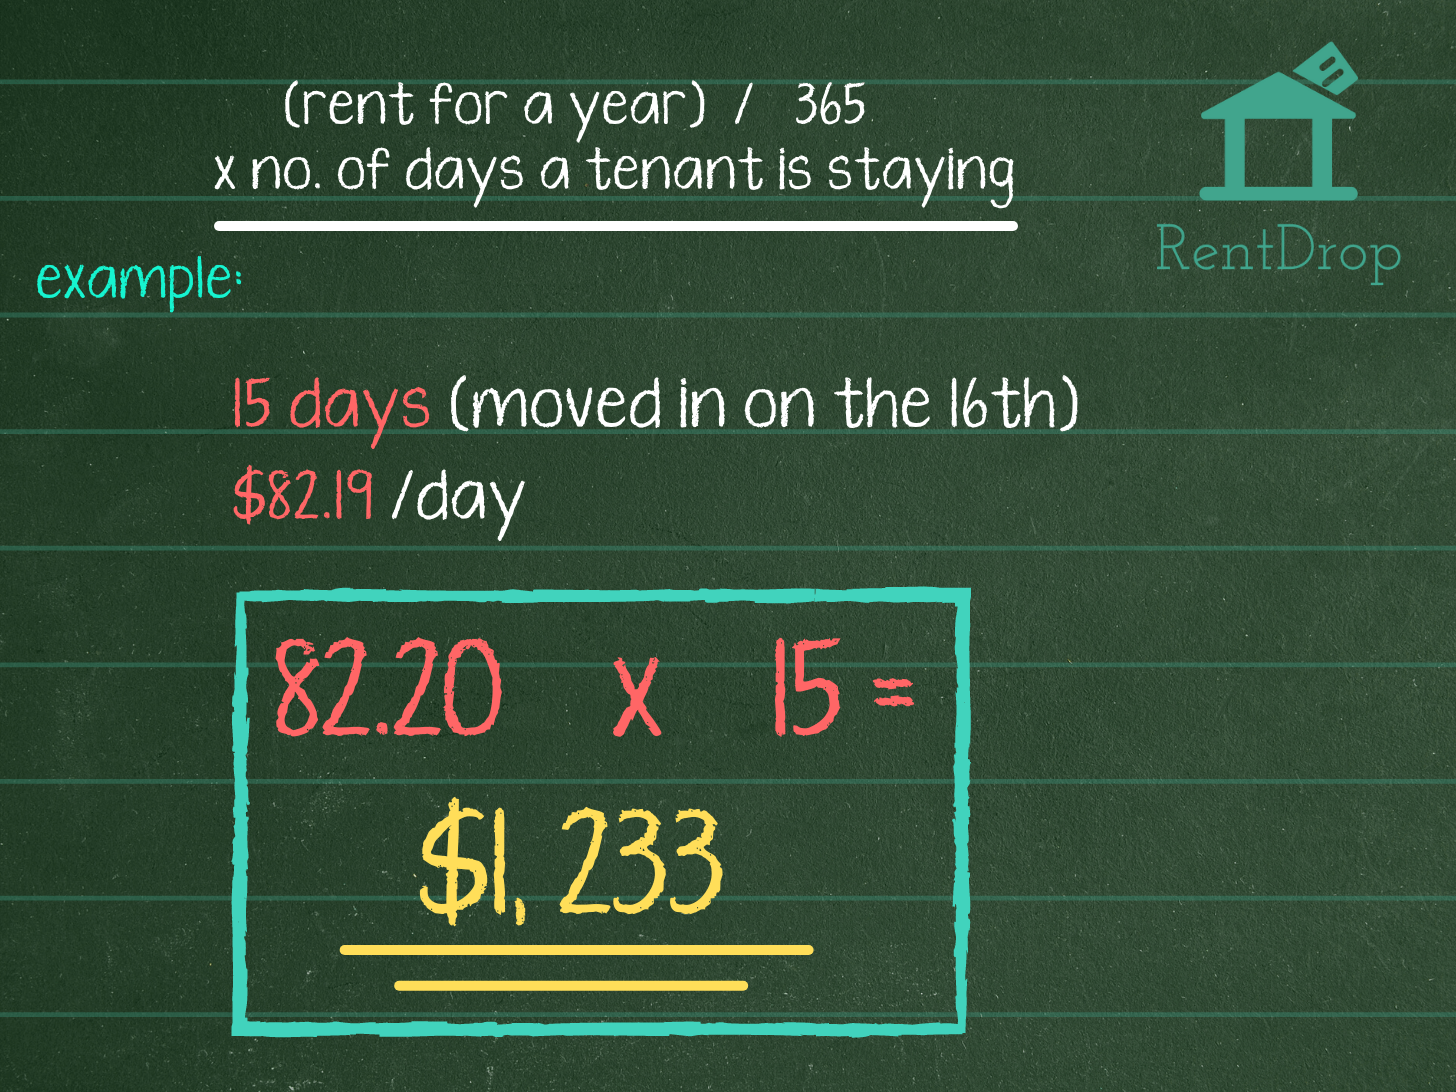 prorated rent calculation